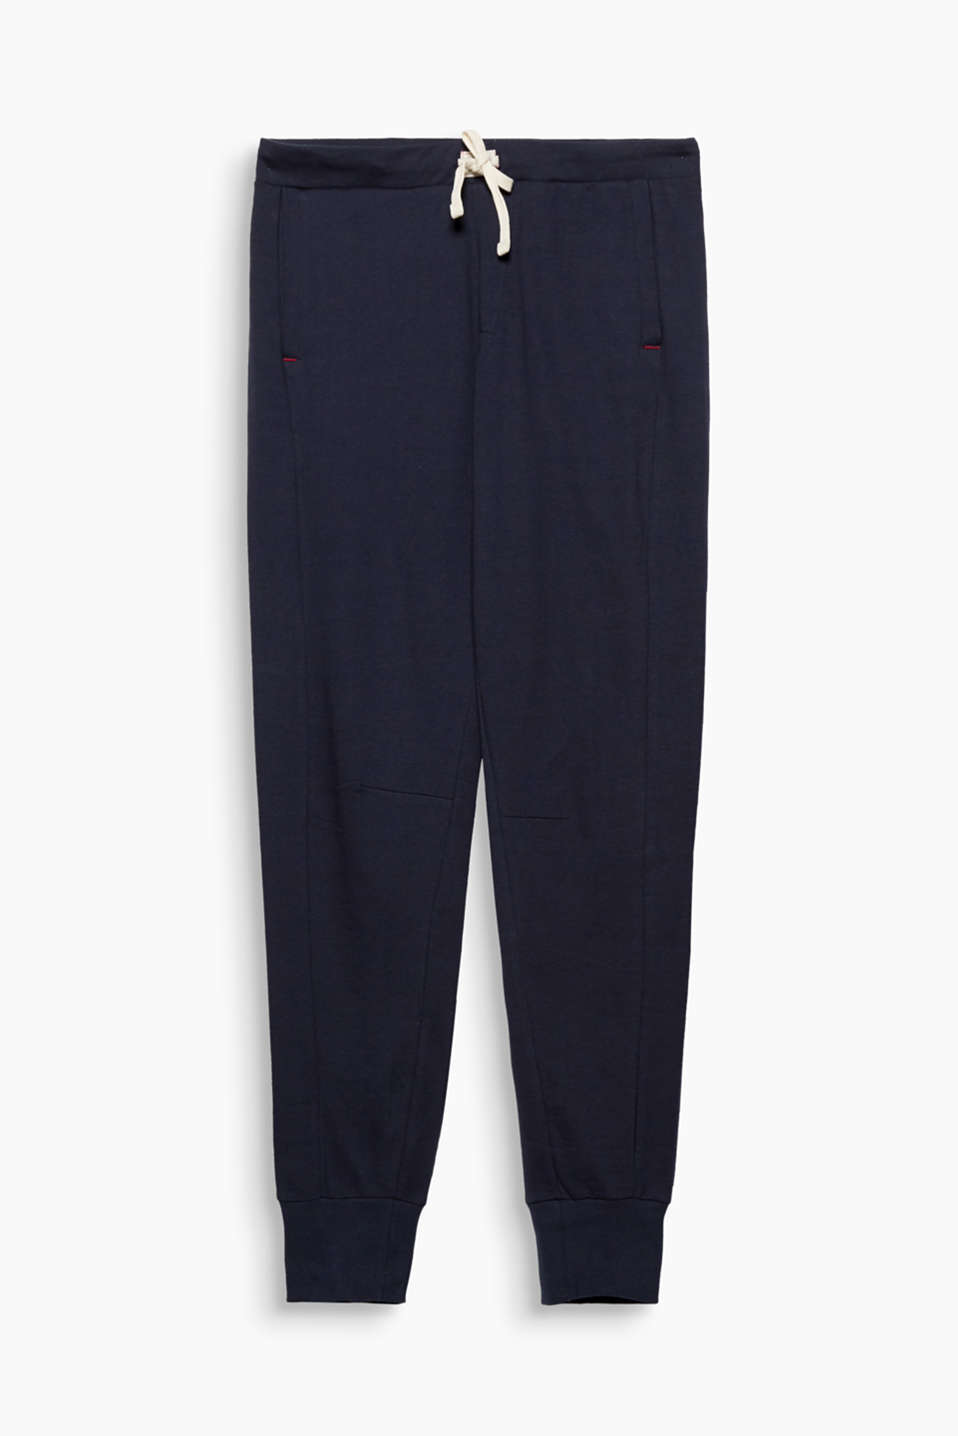 Feel fantastic and wear with whatever you want: these pure cotton-jersey pyjama bottoms are comfy and versatile!